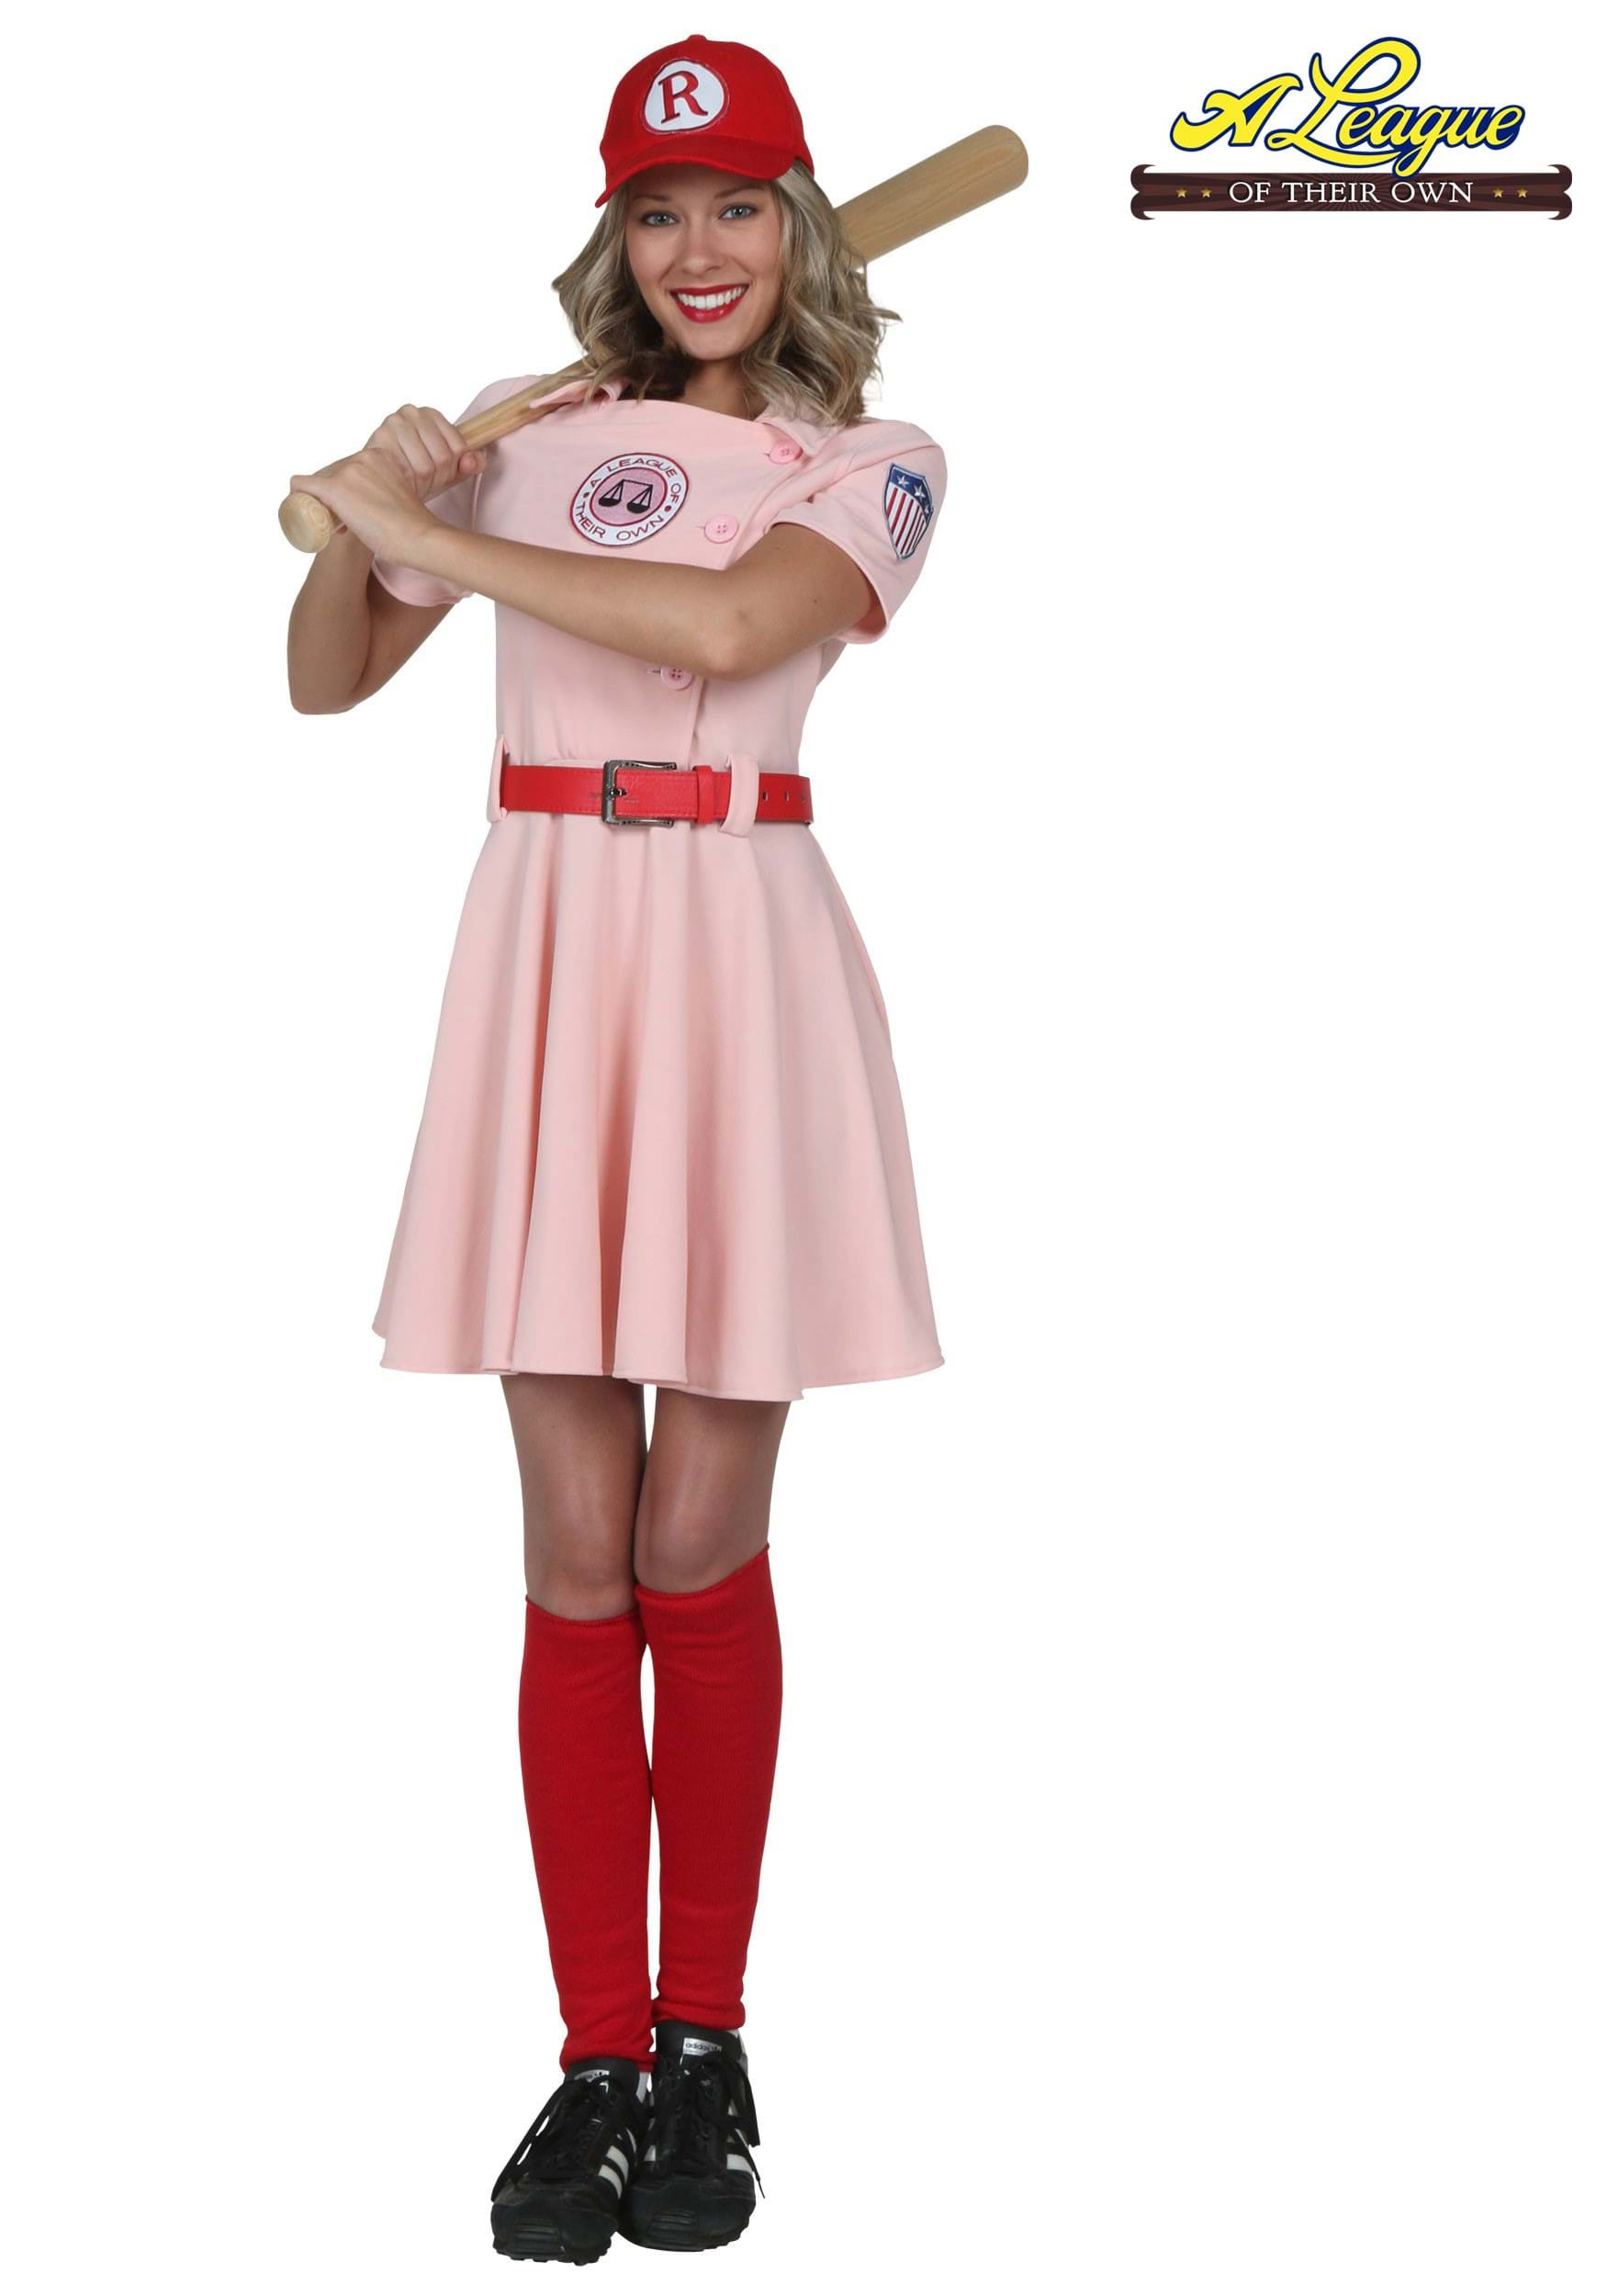 Sports costumes sexy sport costume for adults a league of their own deluxe dottie costume solutioingenieria Image collections